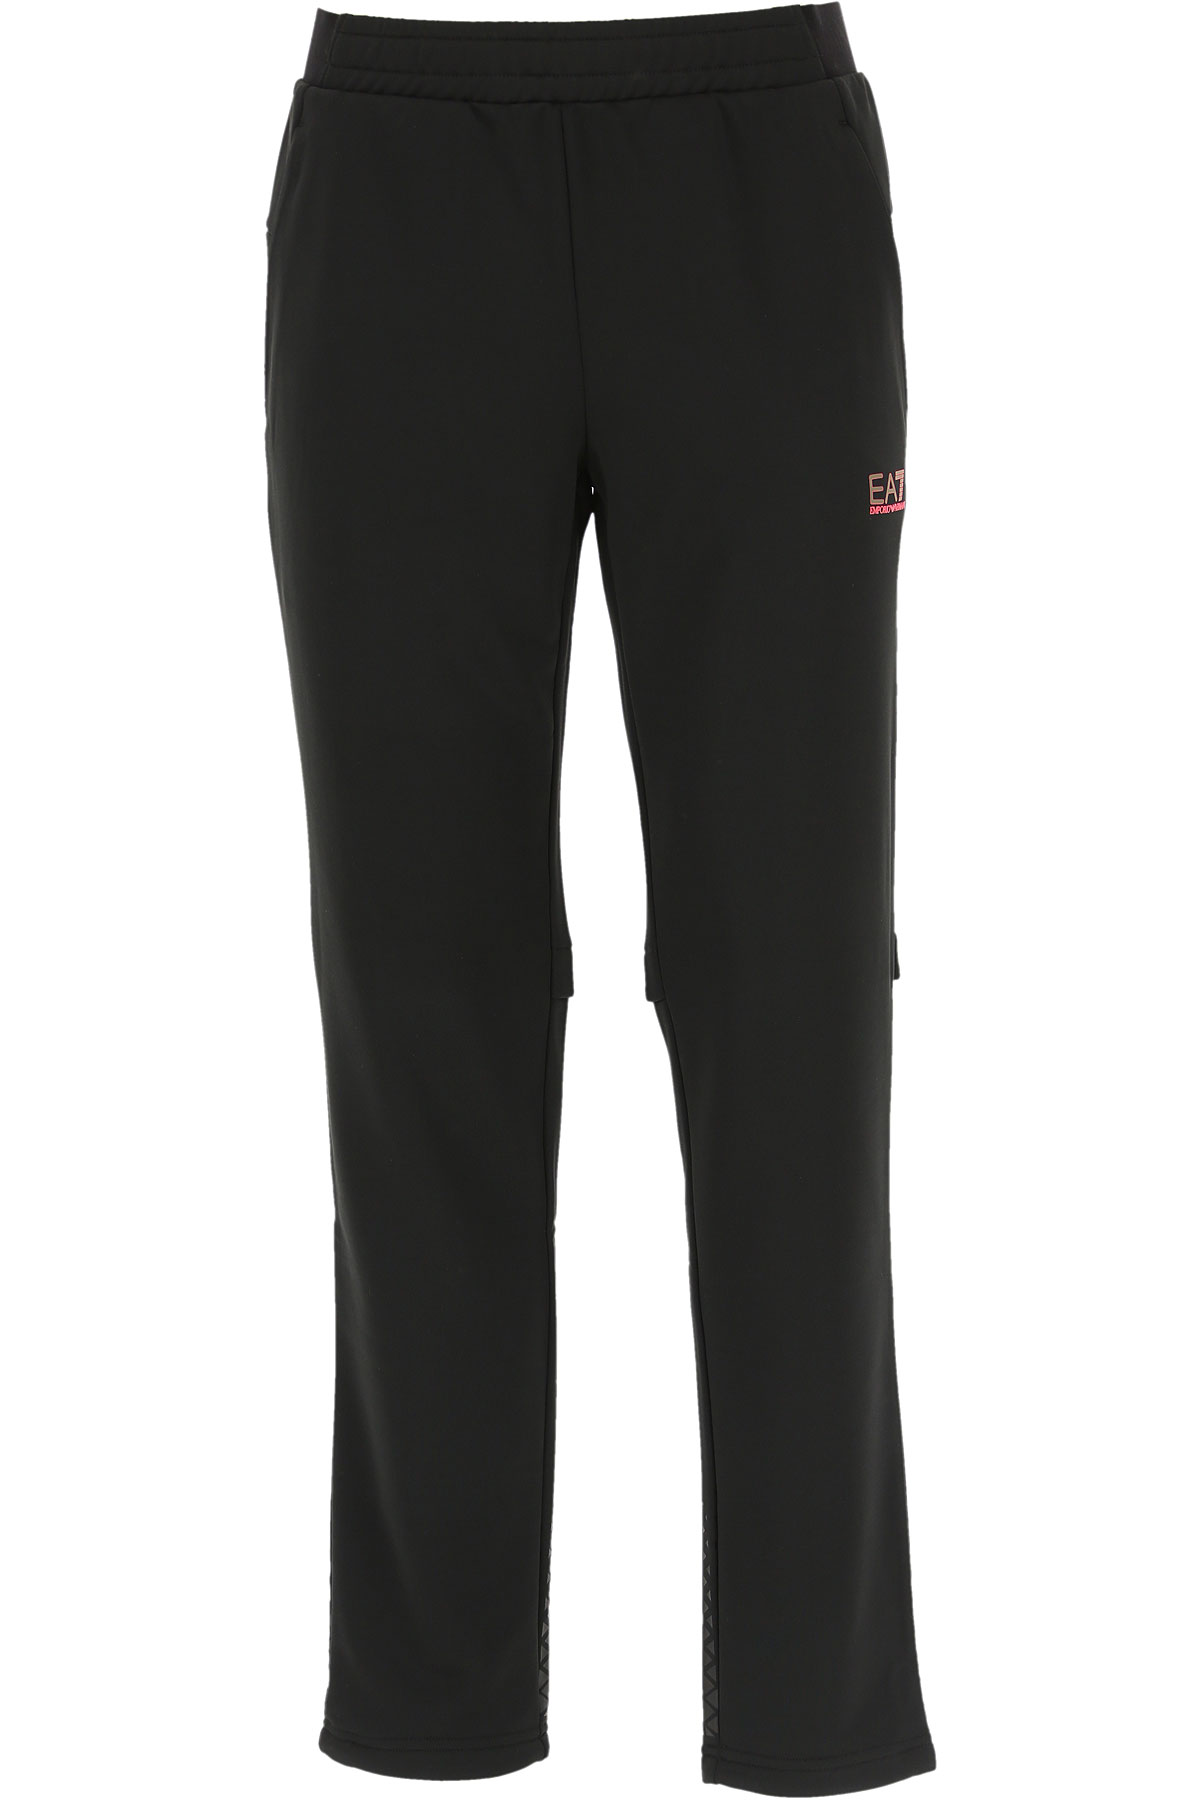 Emporio Armani Men's Sportswear for Gym Workouts and Running On Sale in Outlet, Black, polyester, 2019, L XL